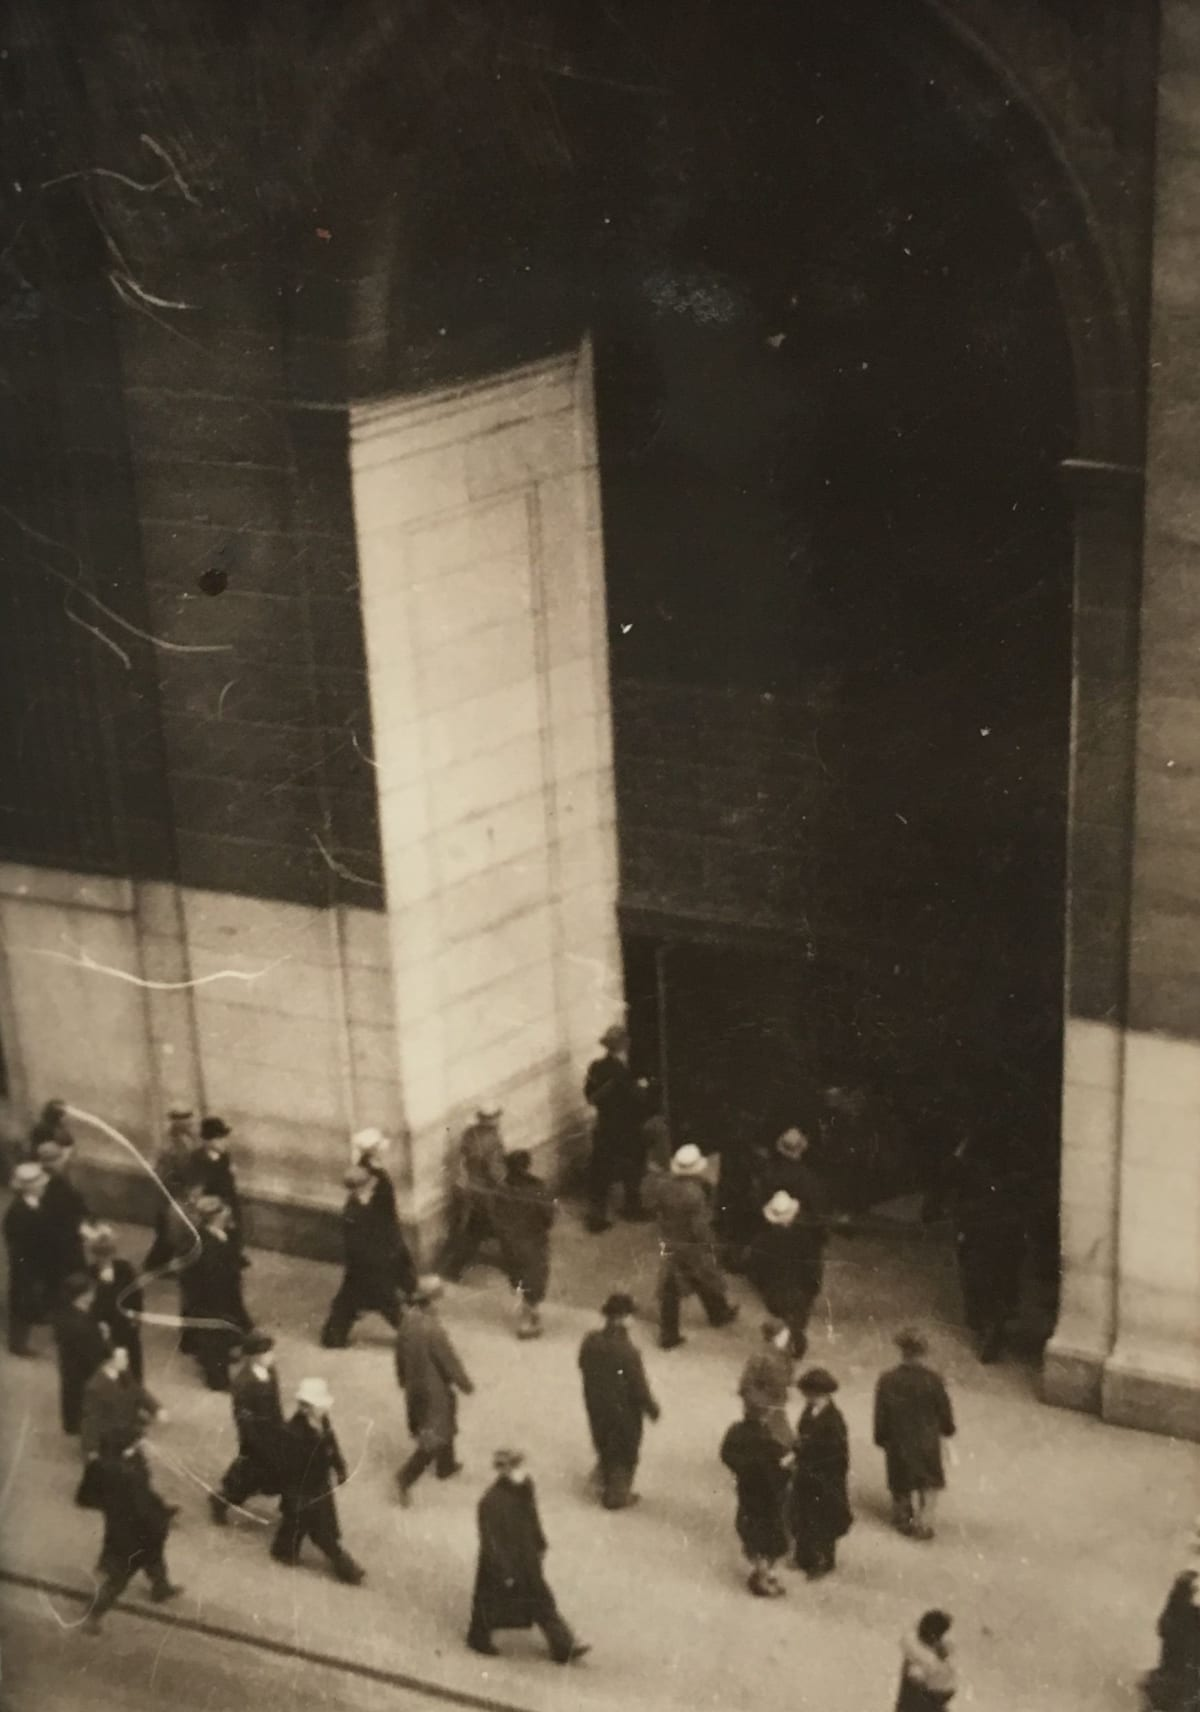 Fred Zinnemann People on Street in front of the Equitable Building, c. 1932 Vintage gelatin silver print 2 7/8 x 1 7/8 inches